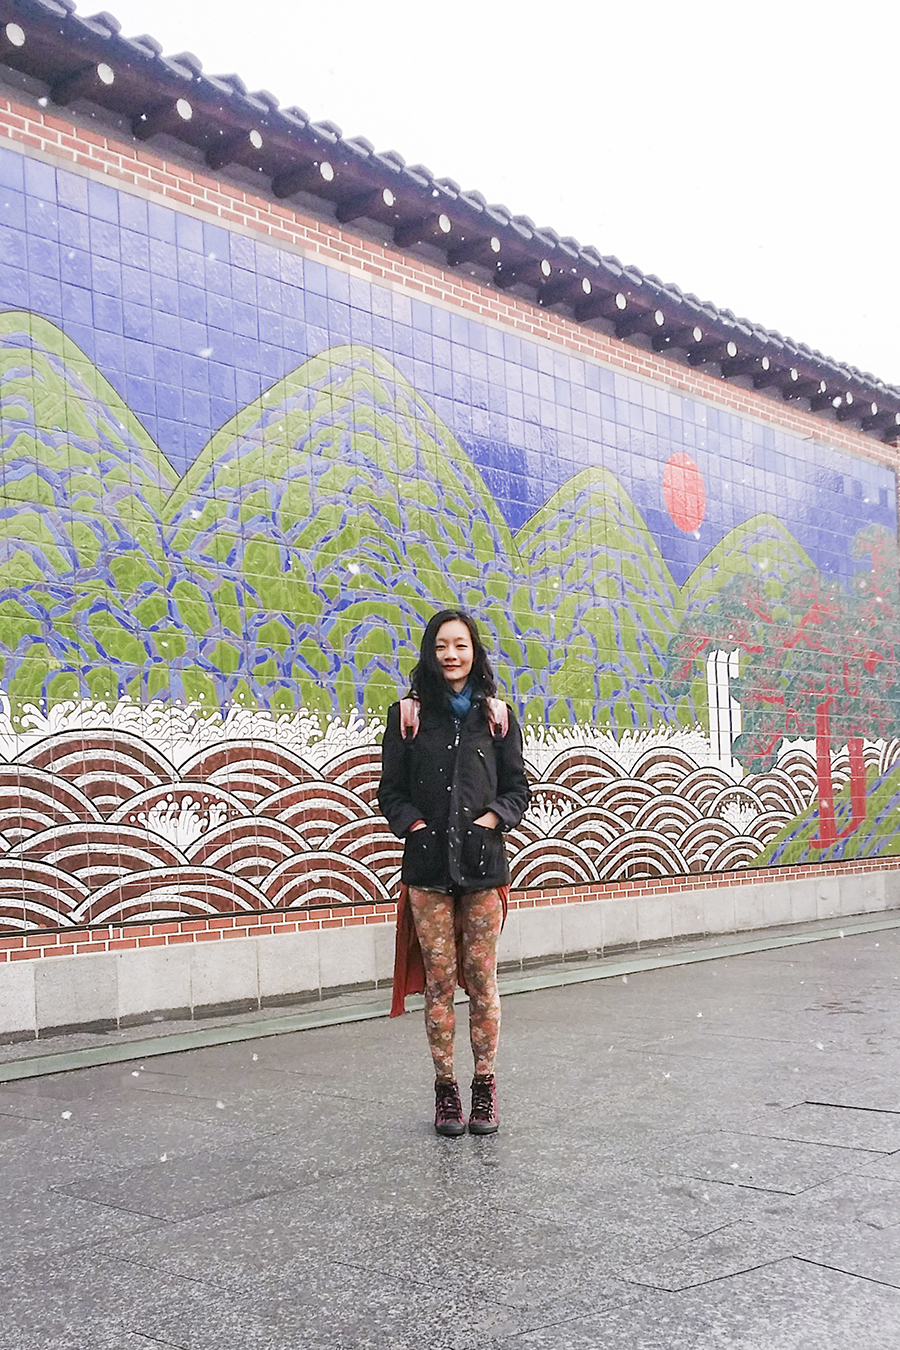 Outfit photo against a tiled wall of a landscape mosaic in Seoul, South Korea.